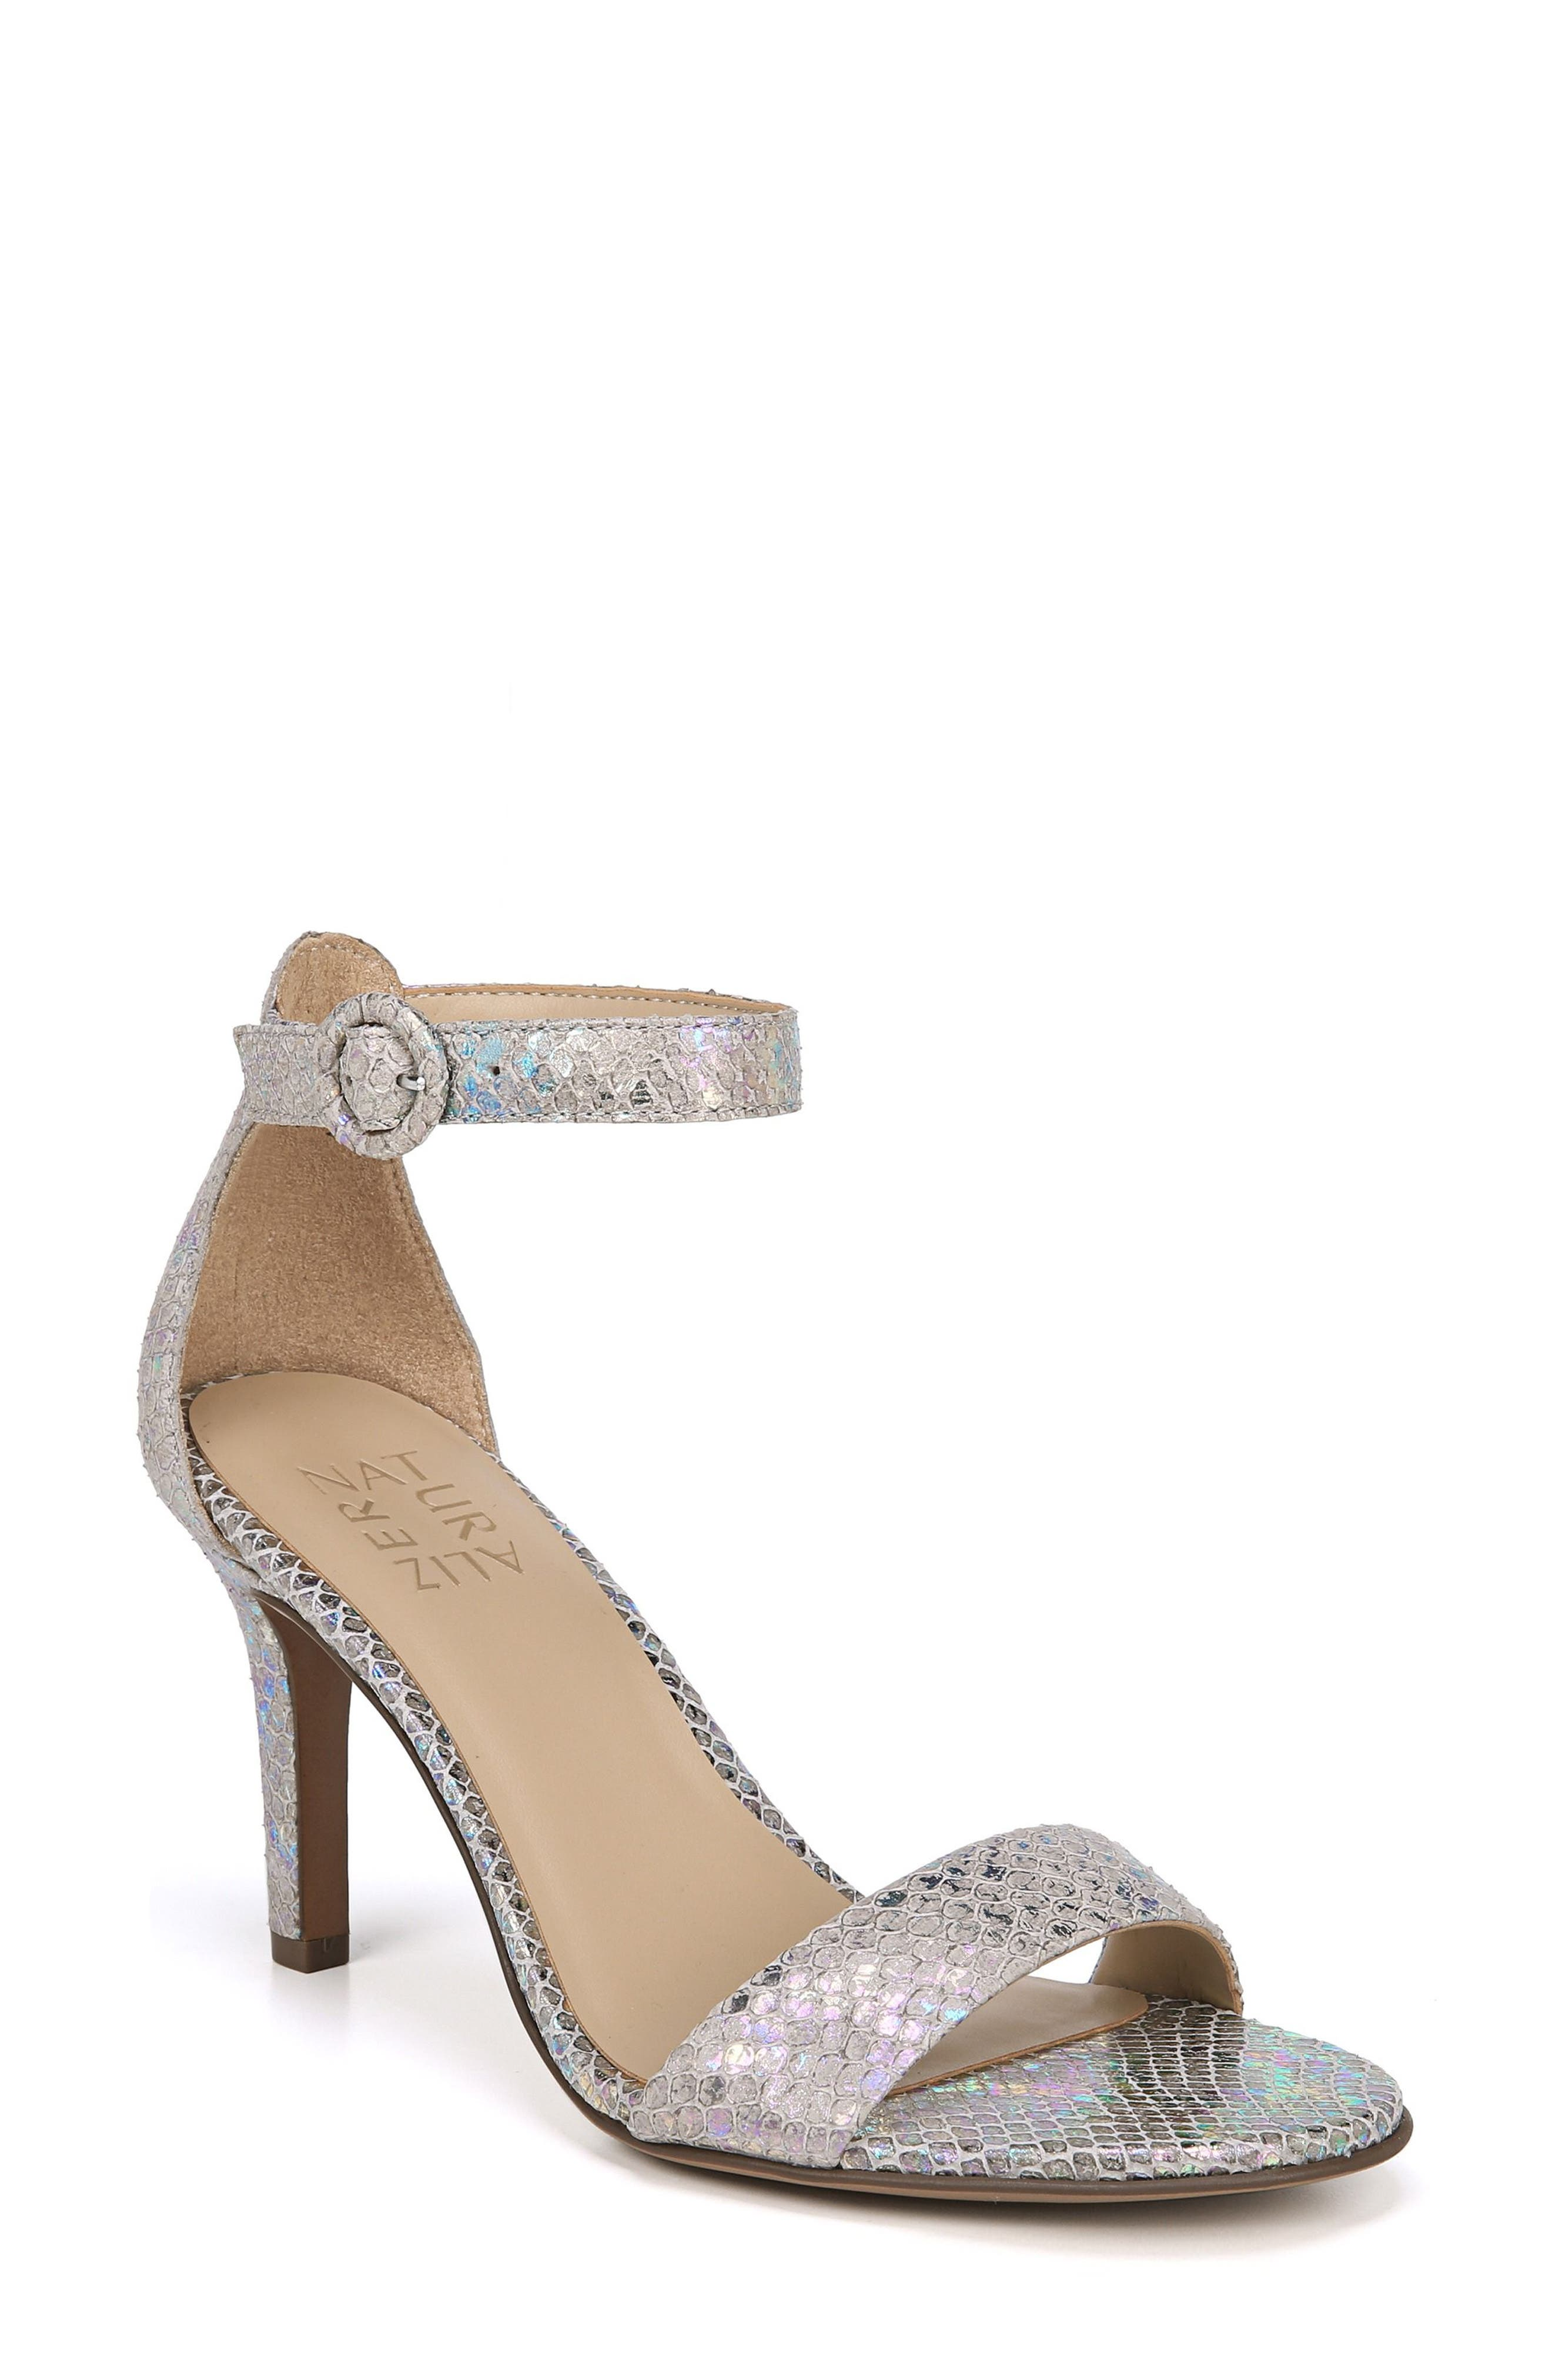 Kinsley Sandal,                         Main,                         color, Silver Snake Leather